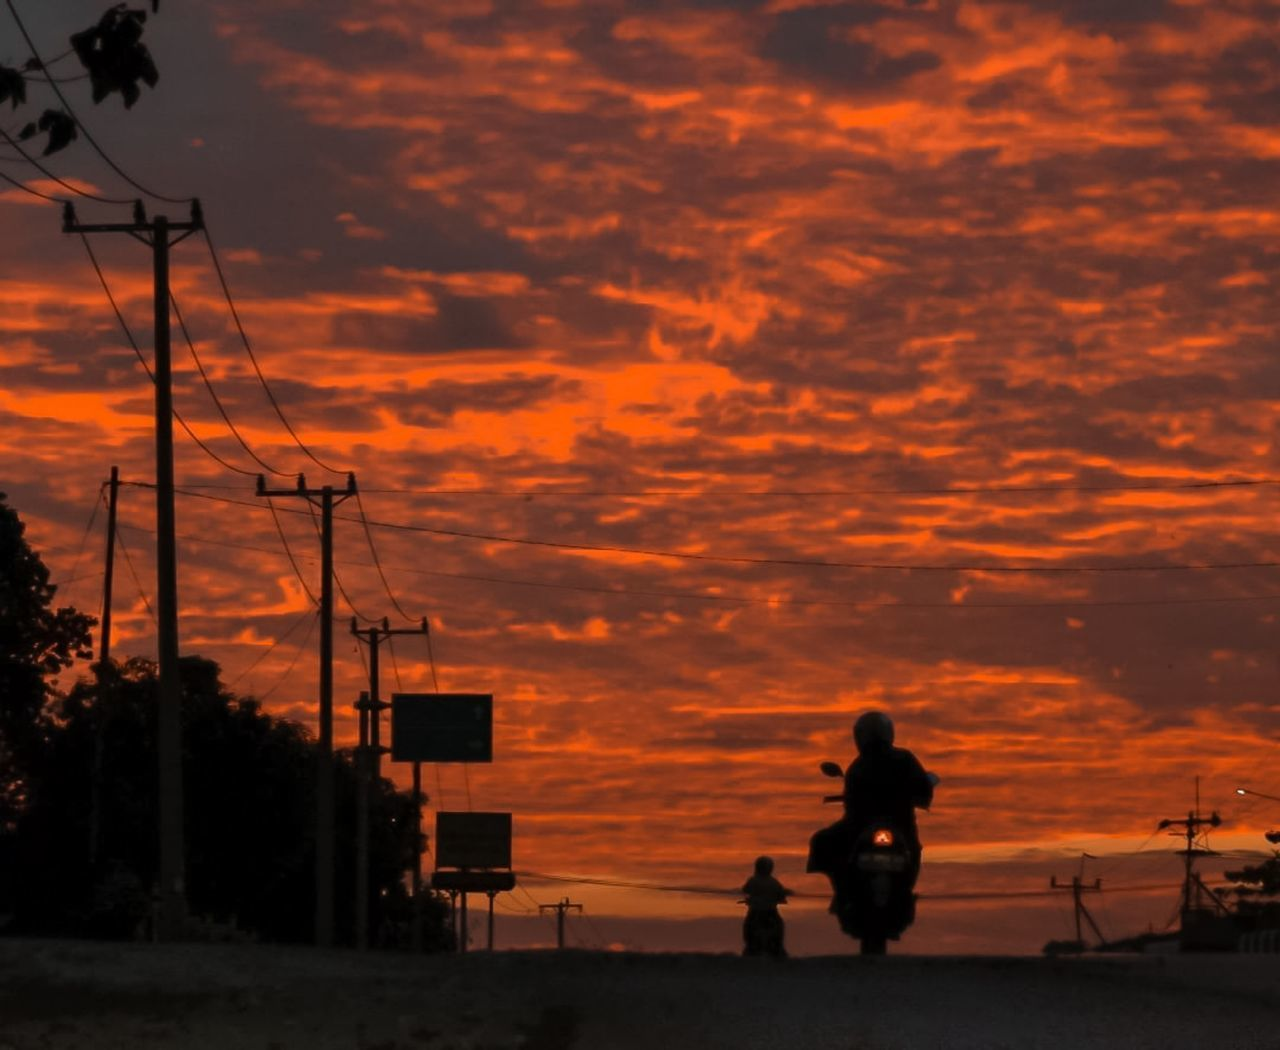 SILHOUETTE COUPLE ON ORANGE SKY DURING SUNSET